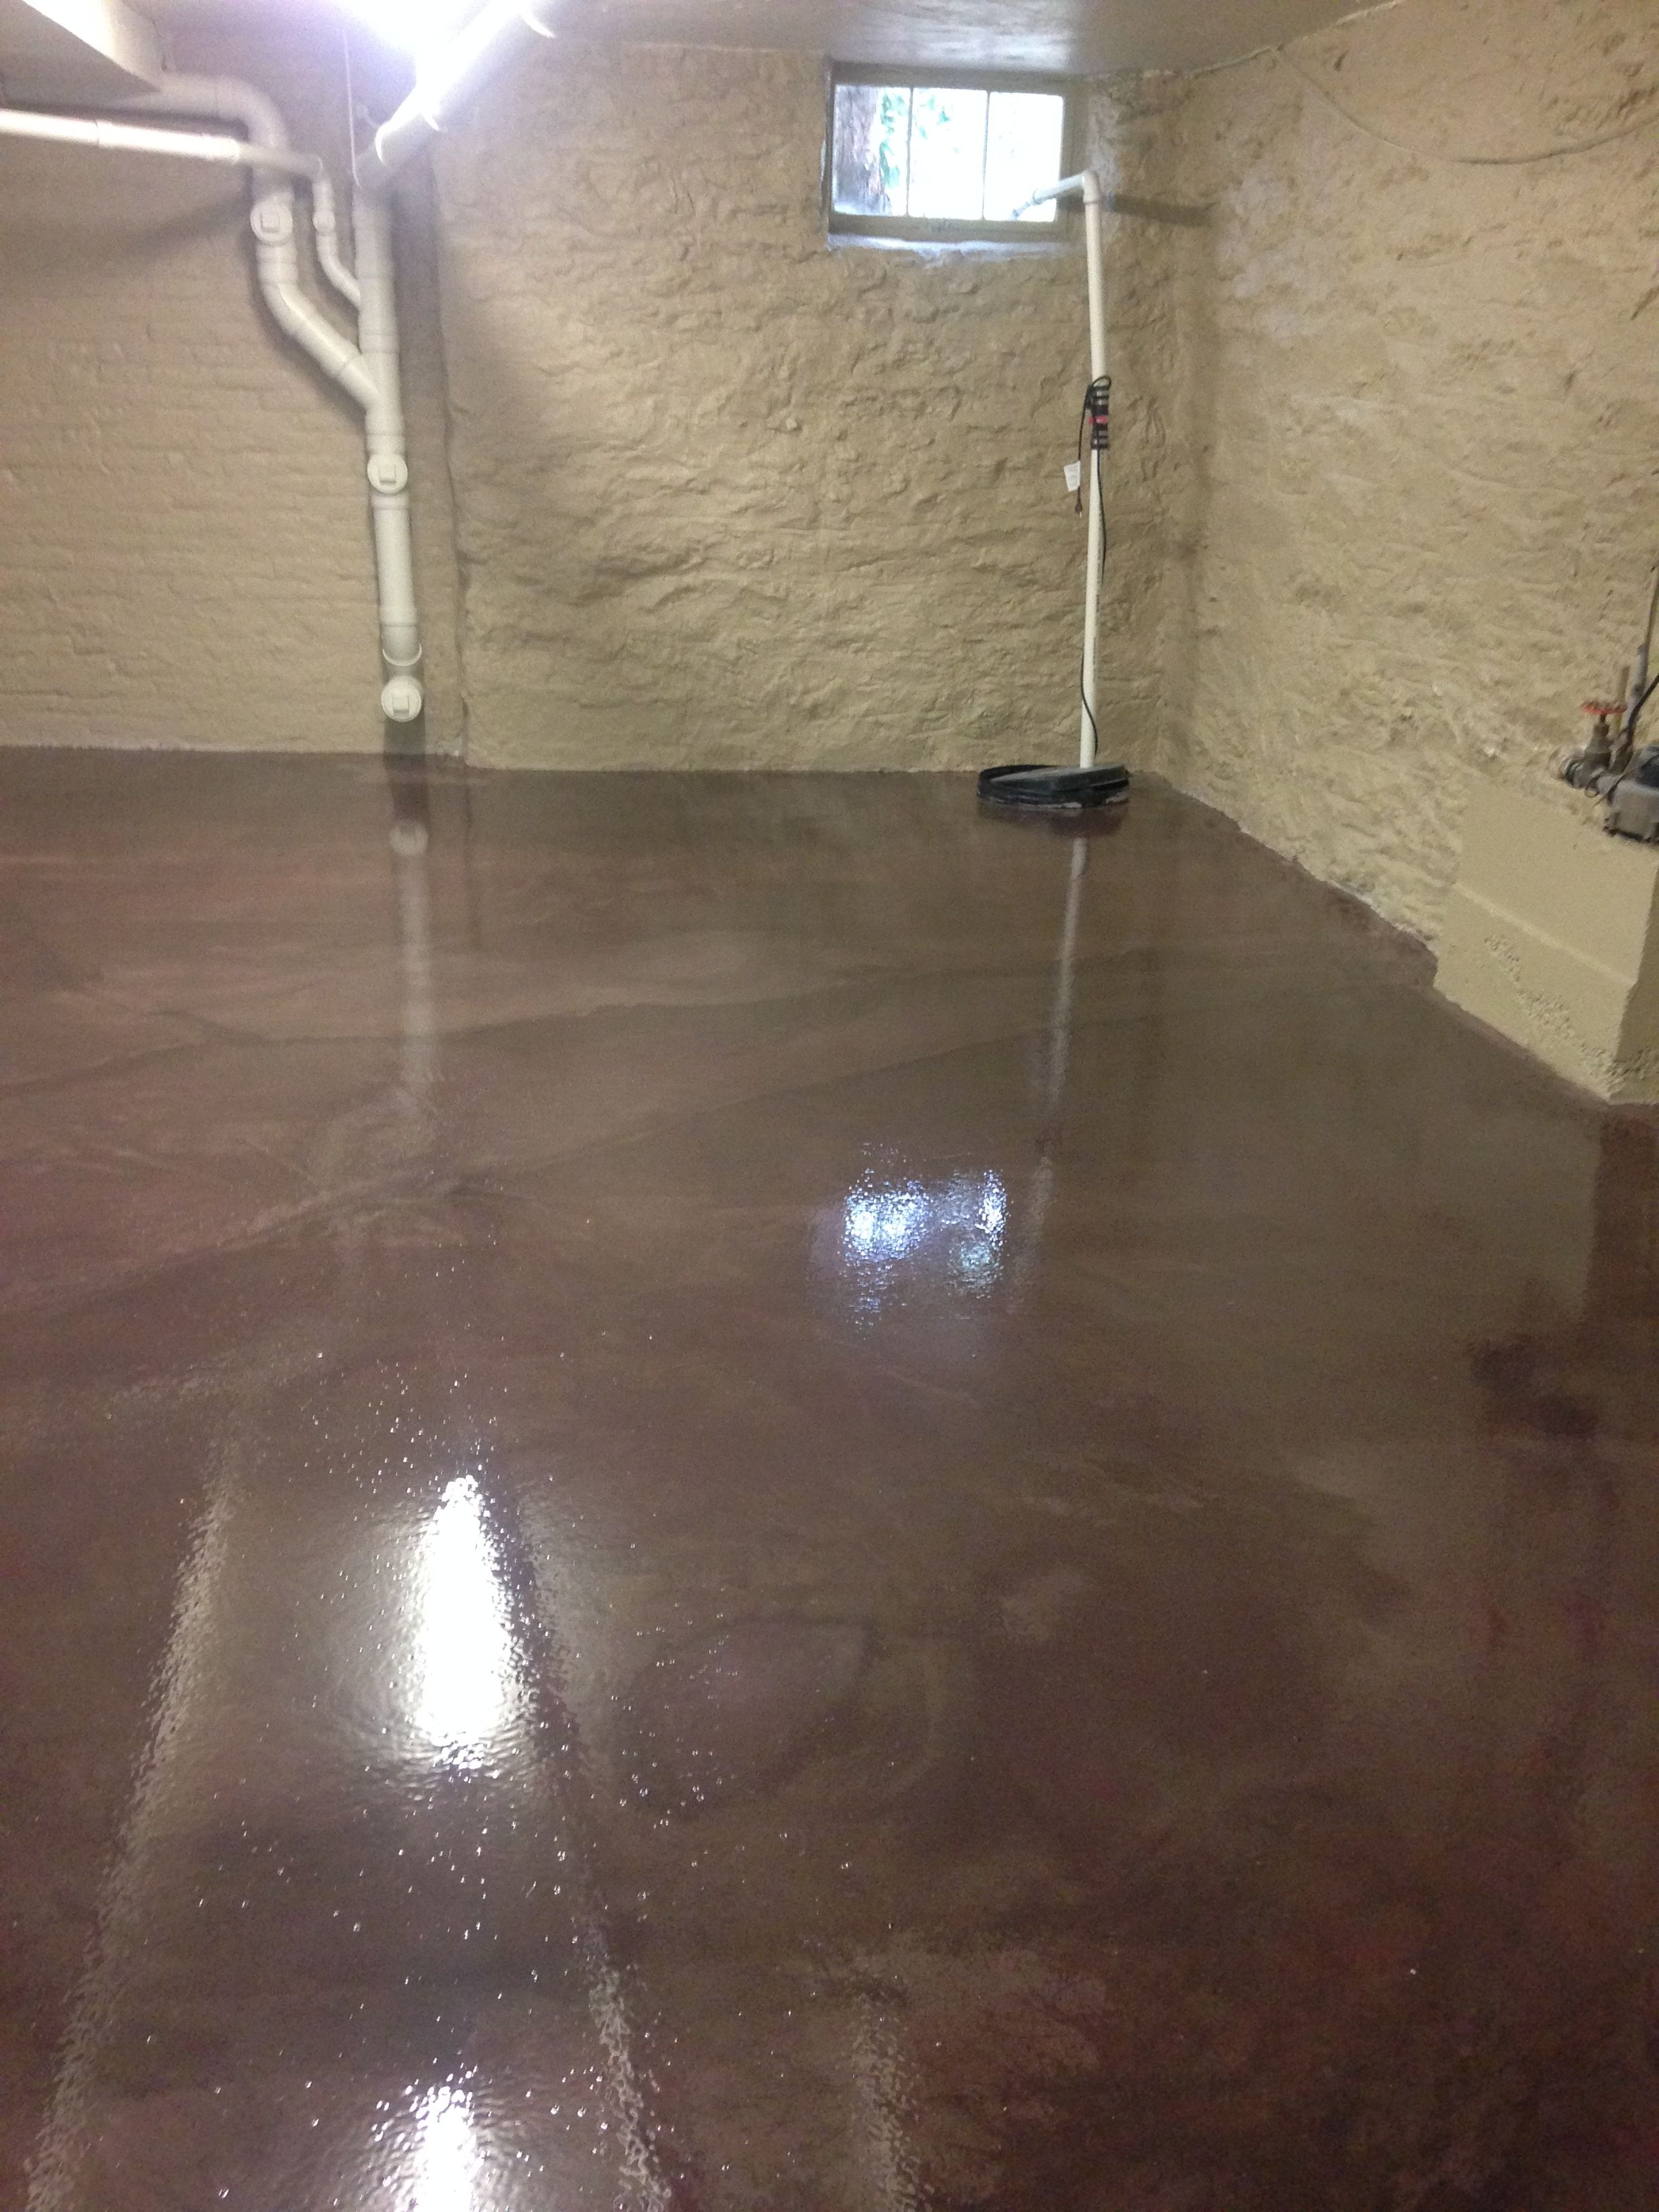 Long Lasting Easy To Clean Beautiful Basement Floor We Repair Any Cracks And Cover Up All St Flooring Basement Flooring Waterproof Basement Flooring Options